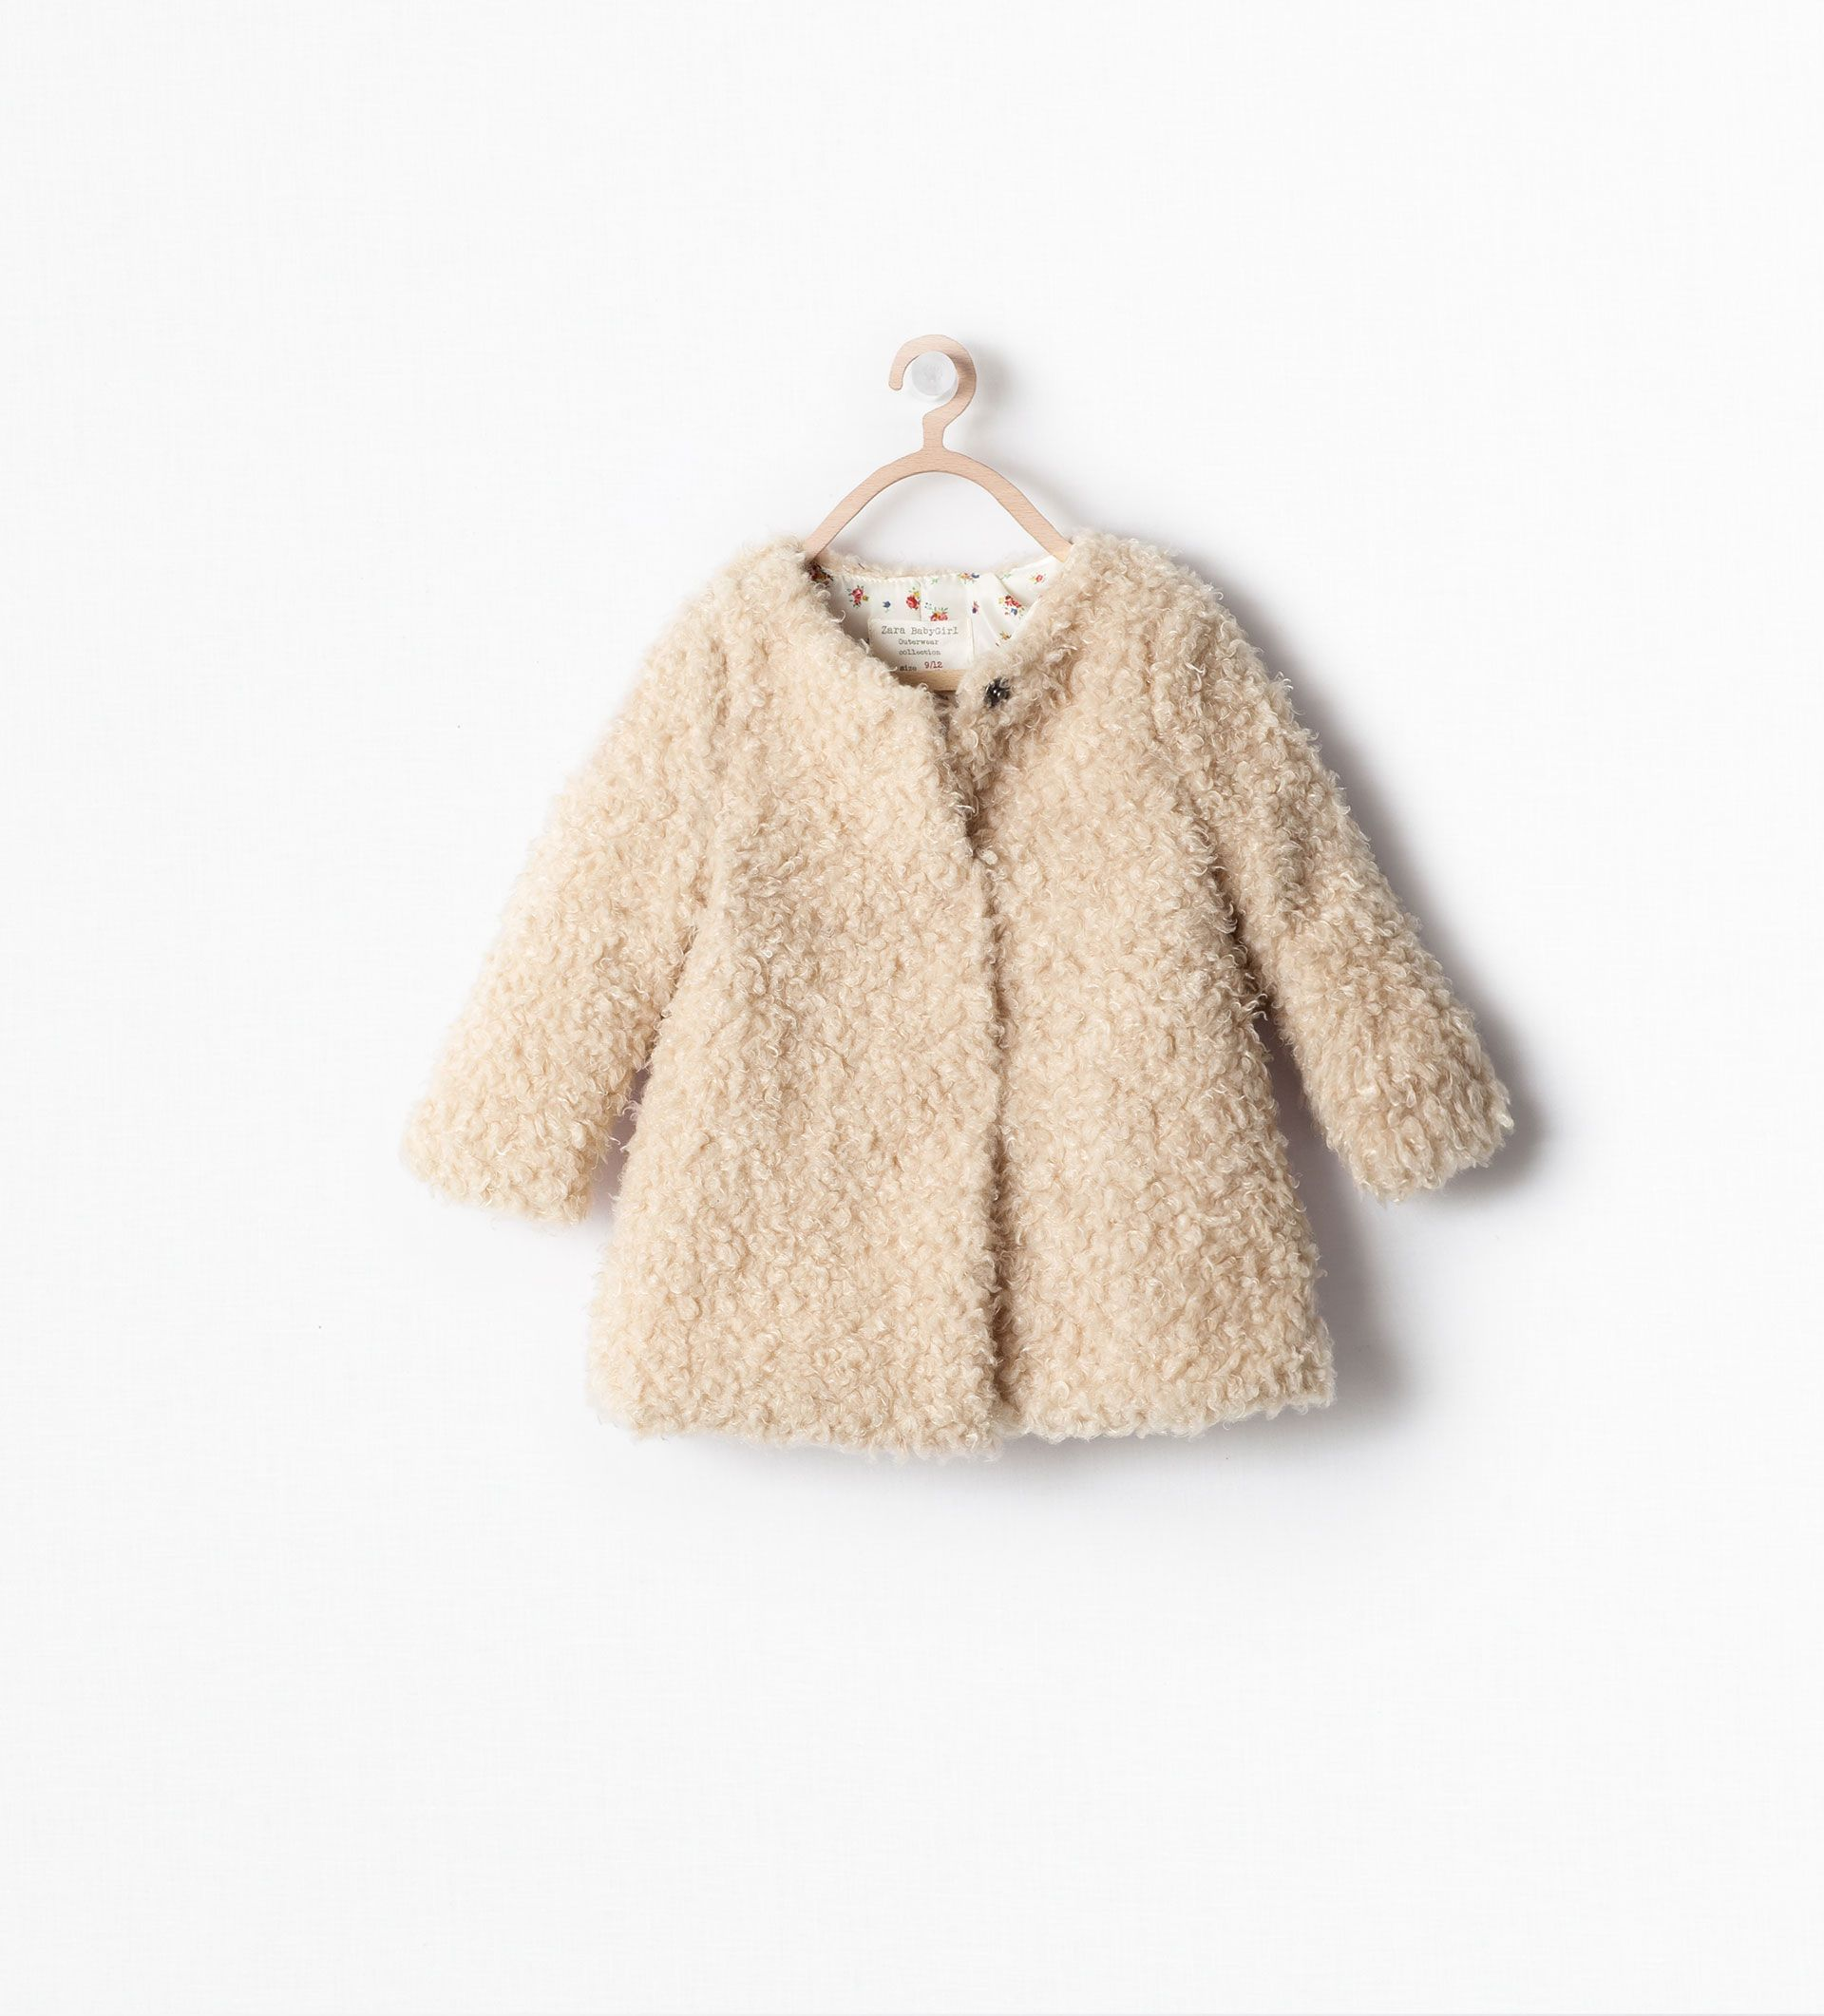 SHEEPSKIN COAT from Zara Baby Girls | Baby/Toddler Girl ...